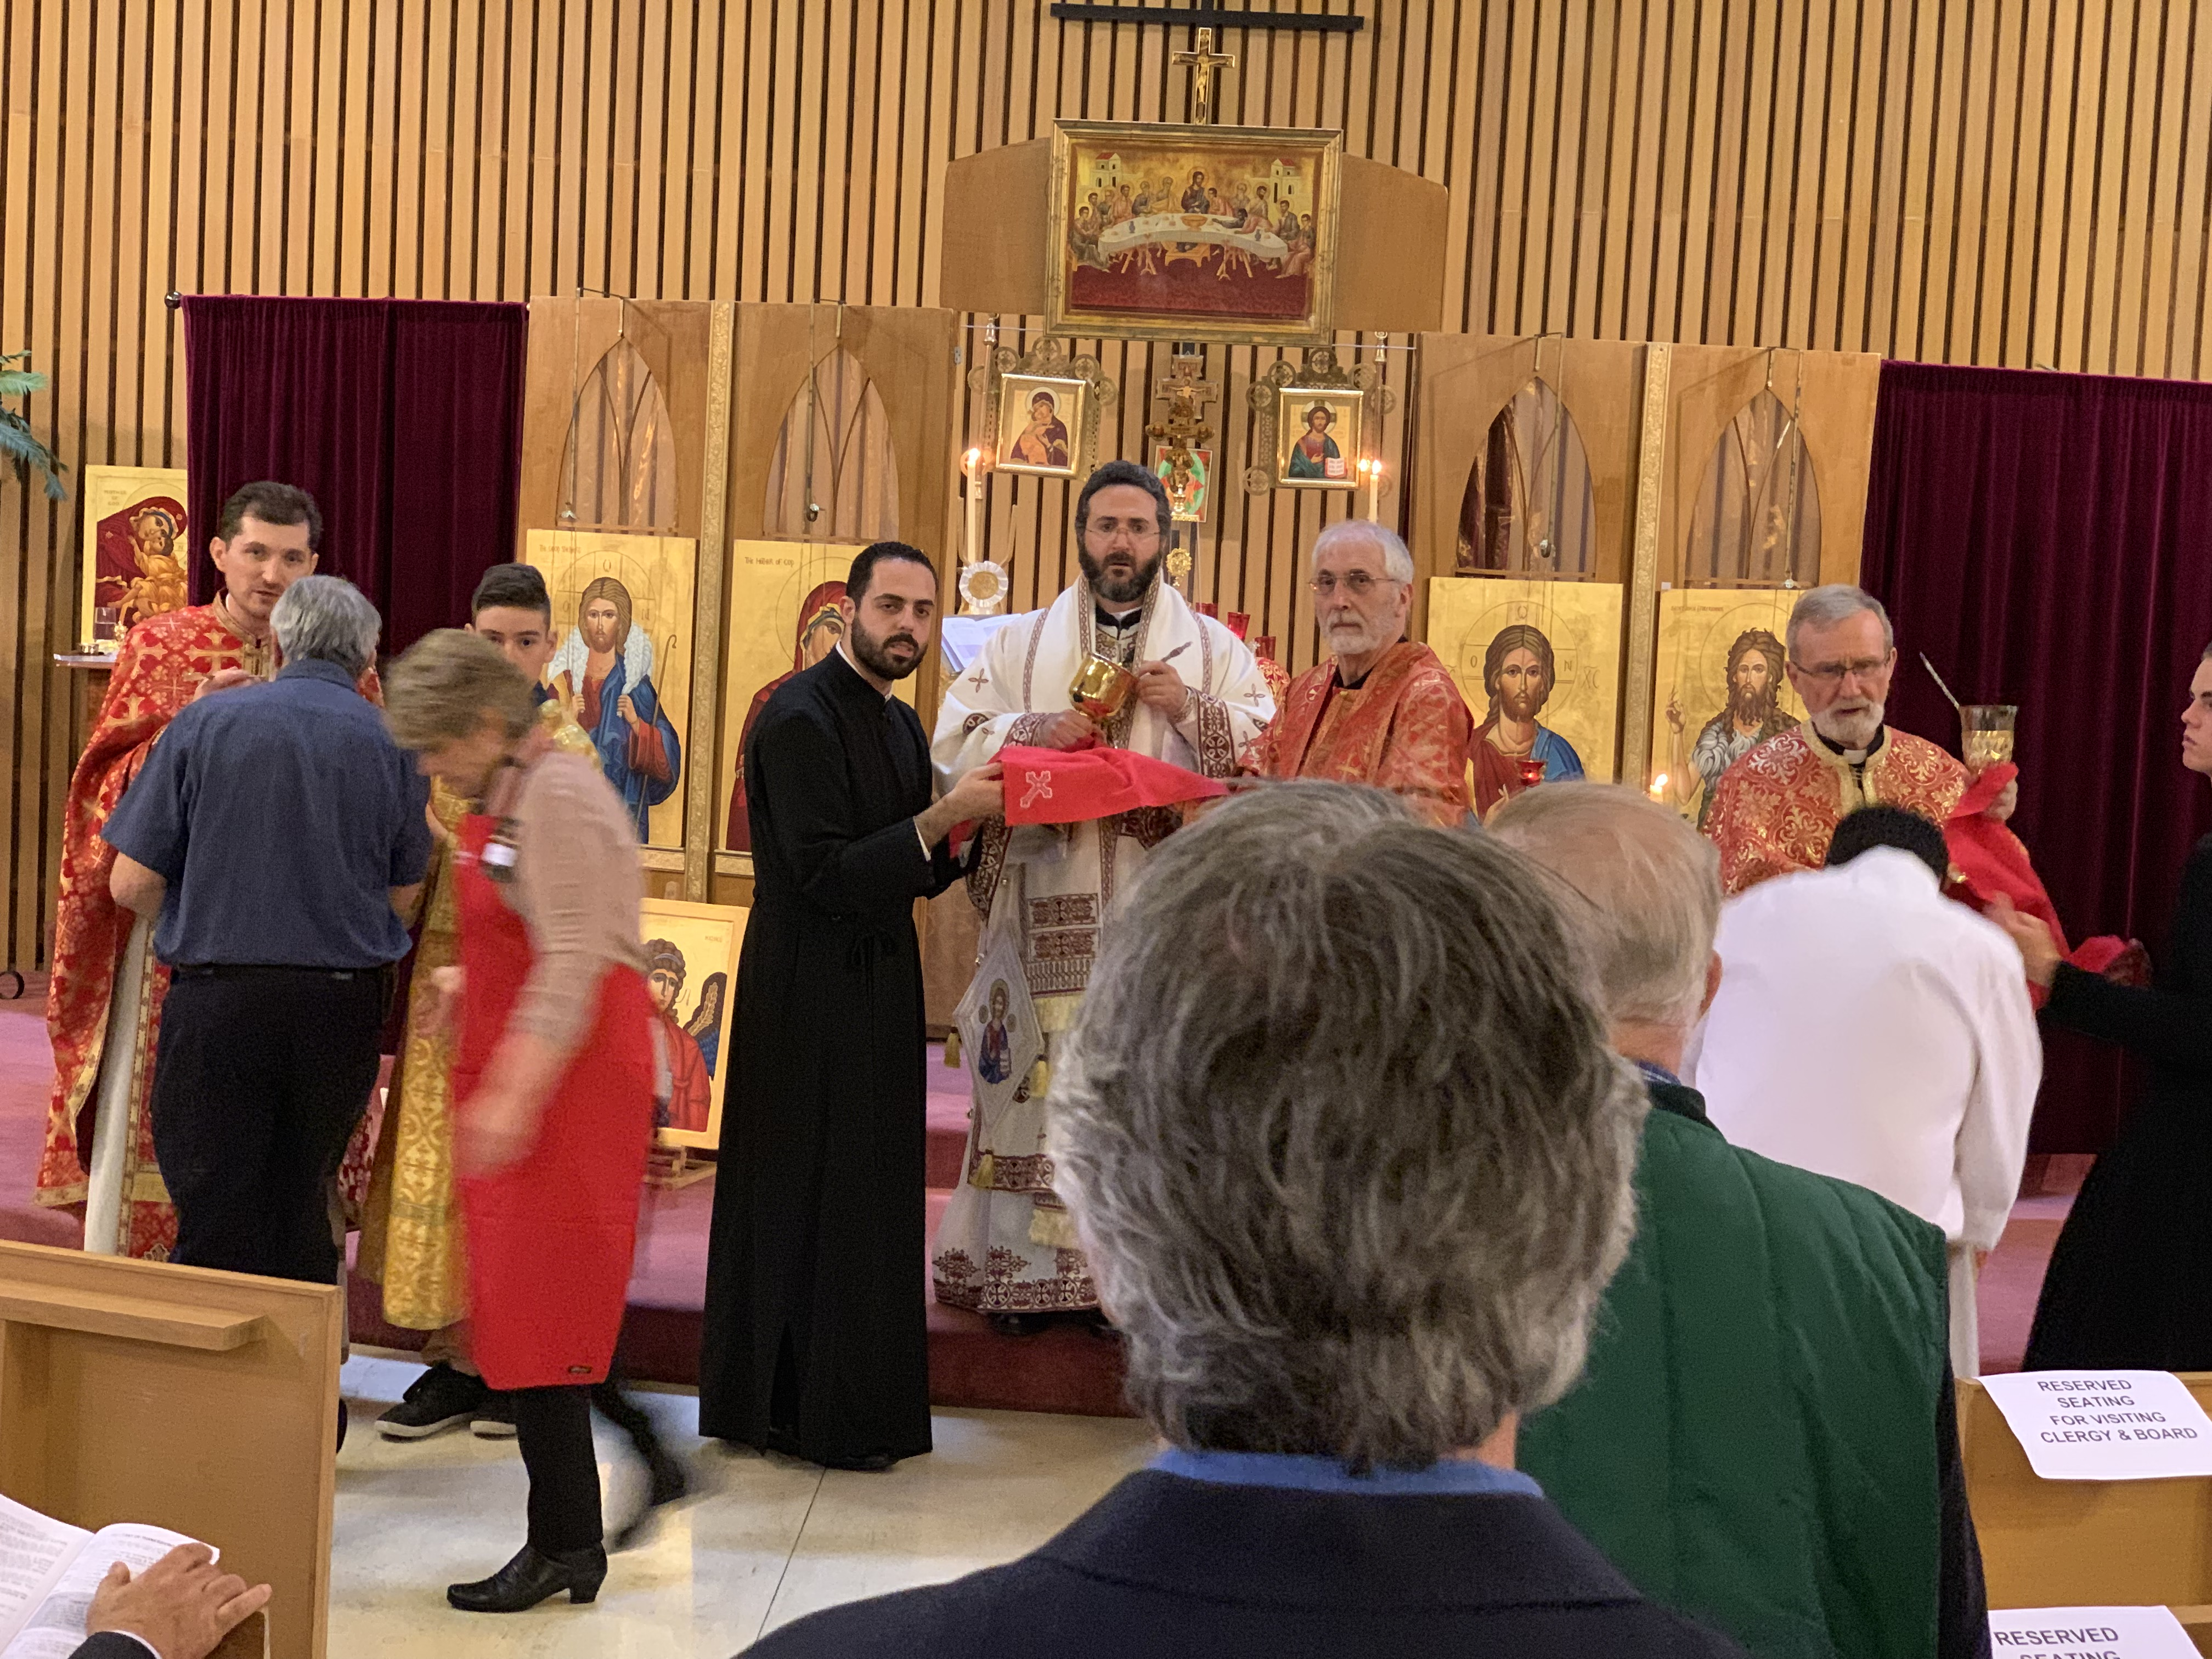 Communion served by Metropolitan Basilios at The Good Shepherd